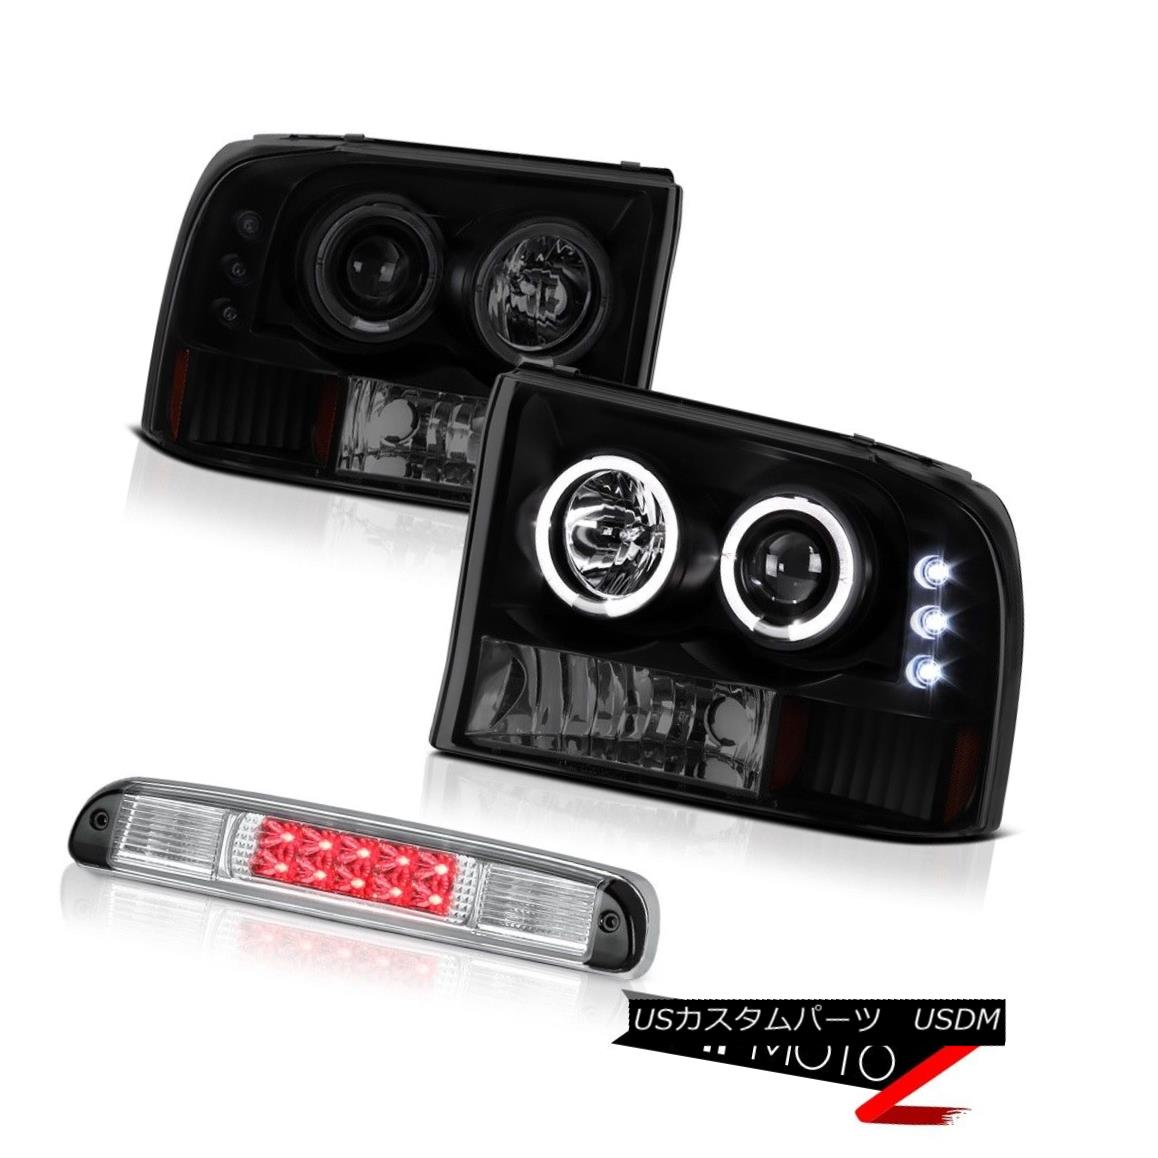 ヘッドライト L.E.D Projector DRL Headlight Roof Brake Cargo LED 1999-2004 F250 SuperDuty 6.8L L.E.DプロジェクターDRLヘッドライトルーフブレーキカーゴLED 1999-2004 F250 SuperDuty 6.8L